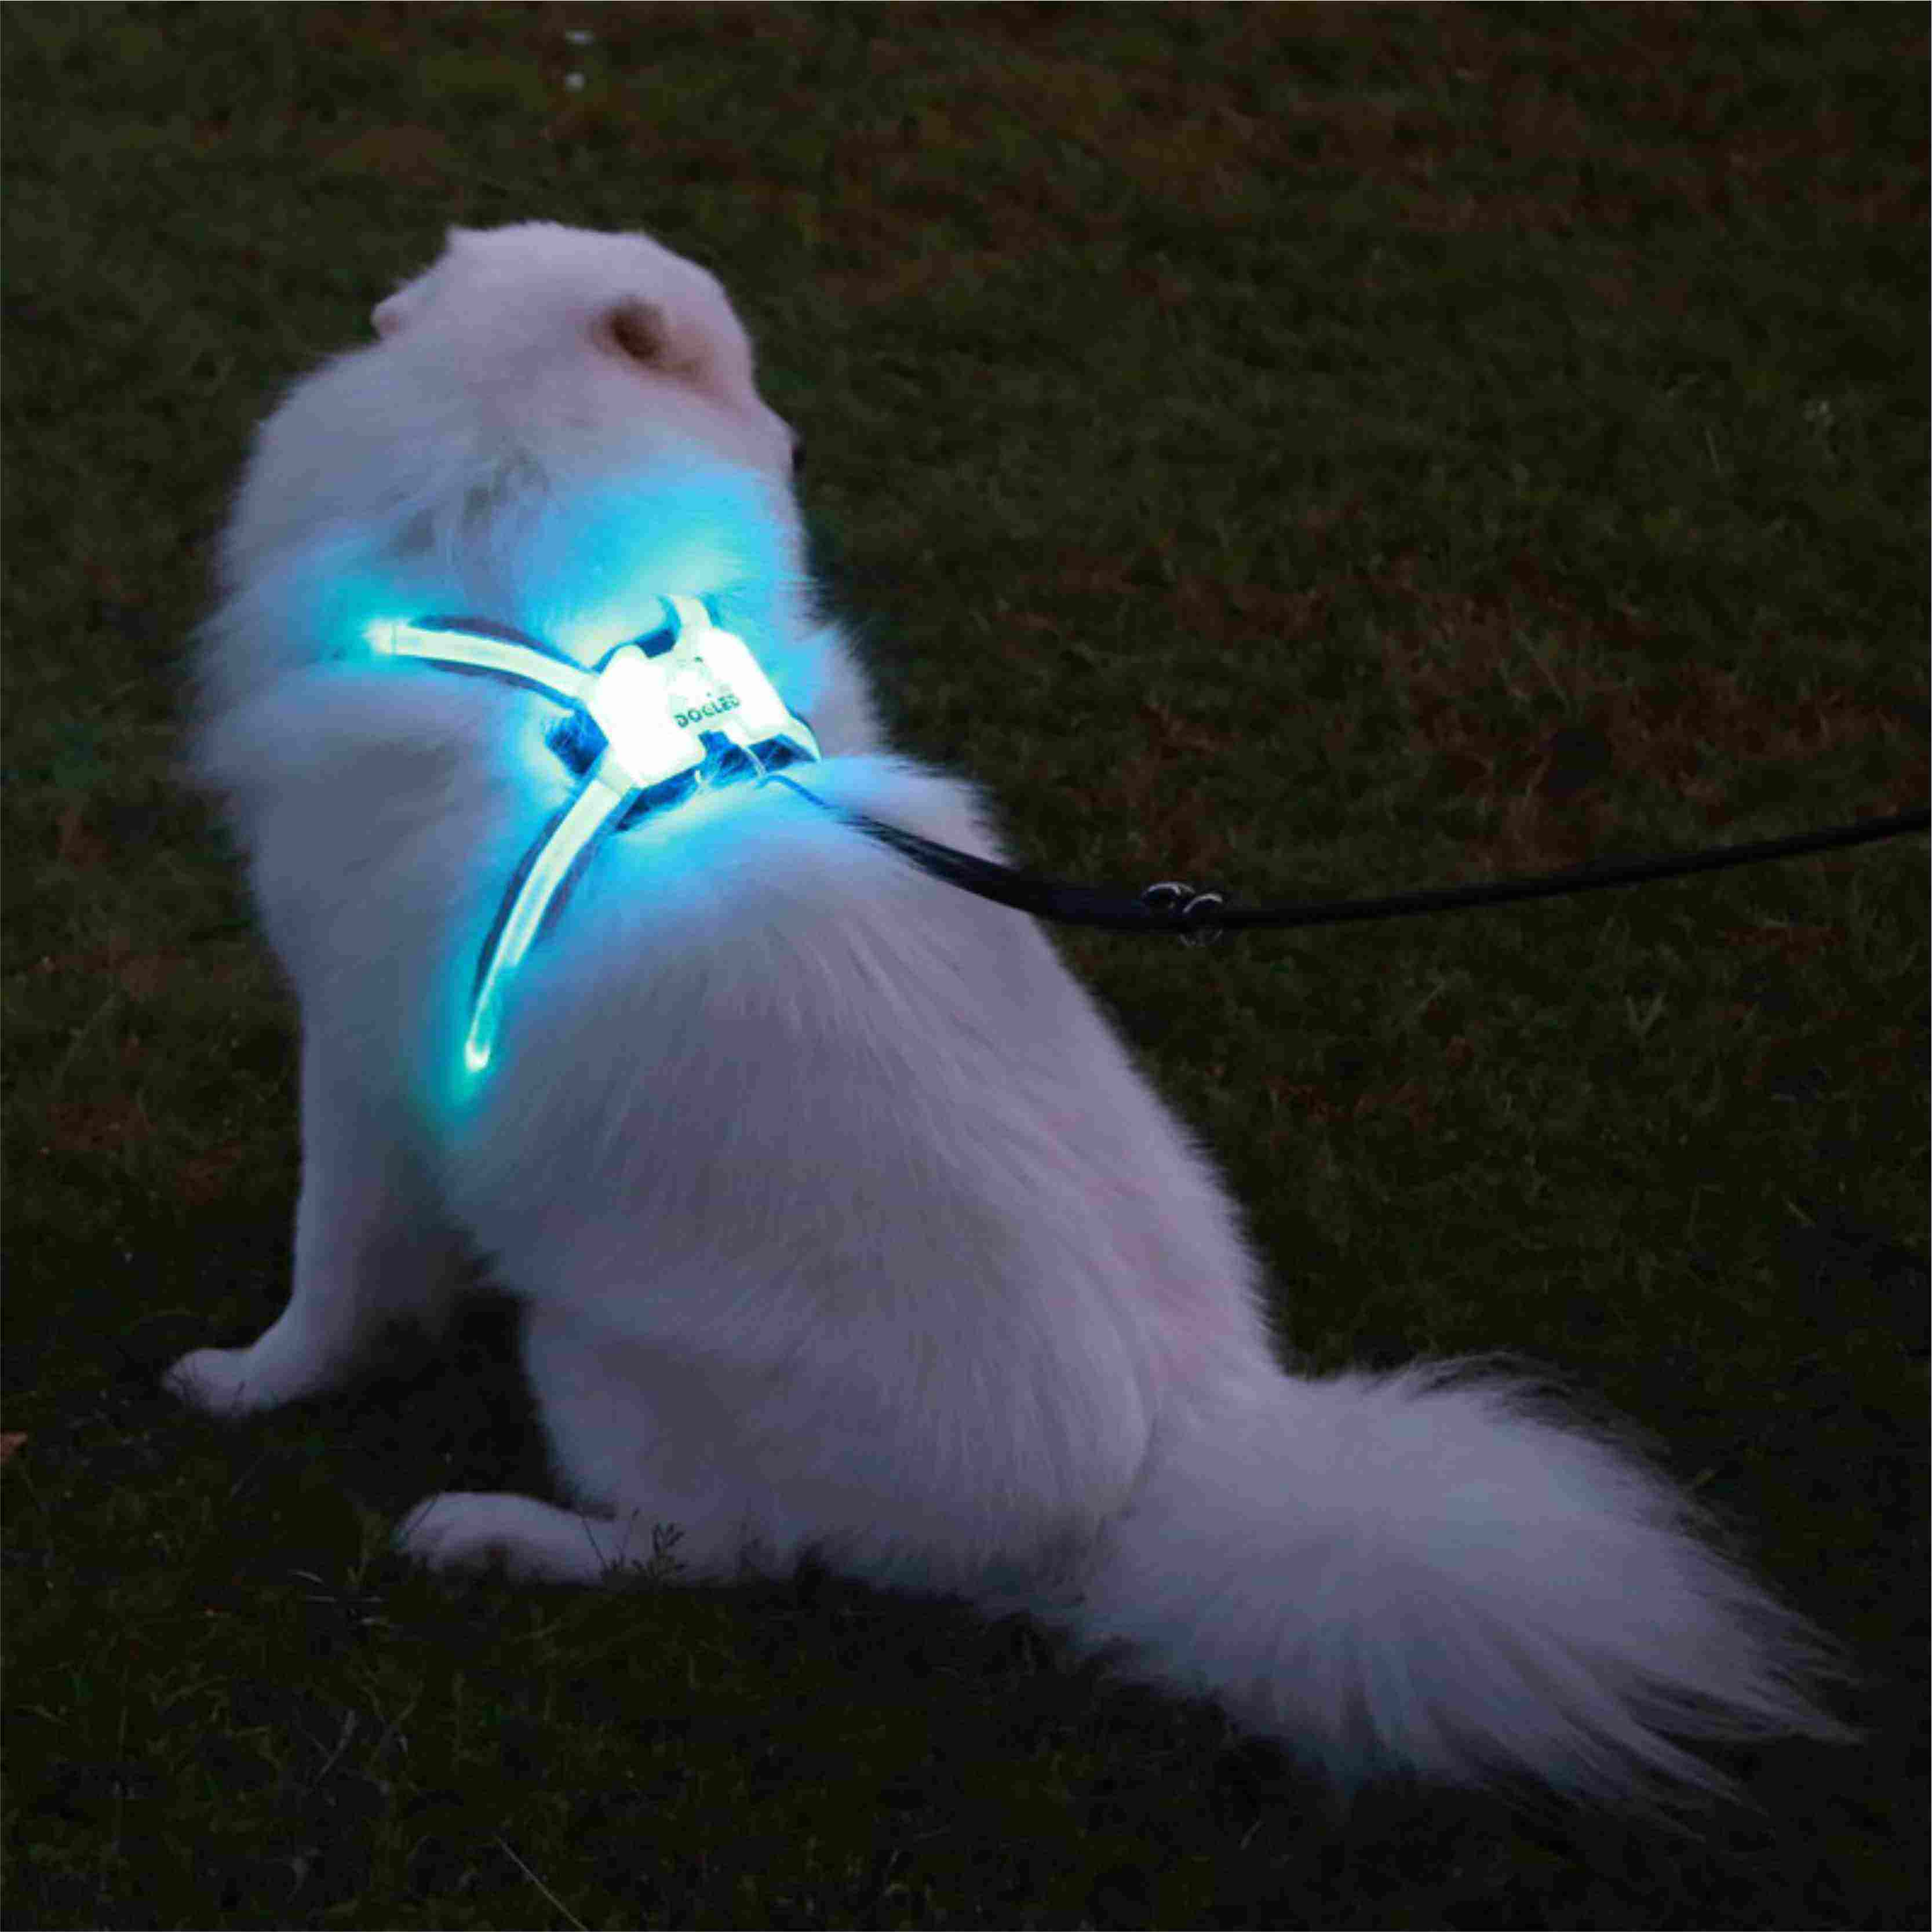 Professional manufacture adjustable pet led dog harness New 2020Favorites LED Pet Dog Cat Harness and Leash Leads Training Safe